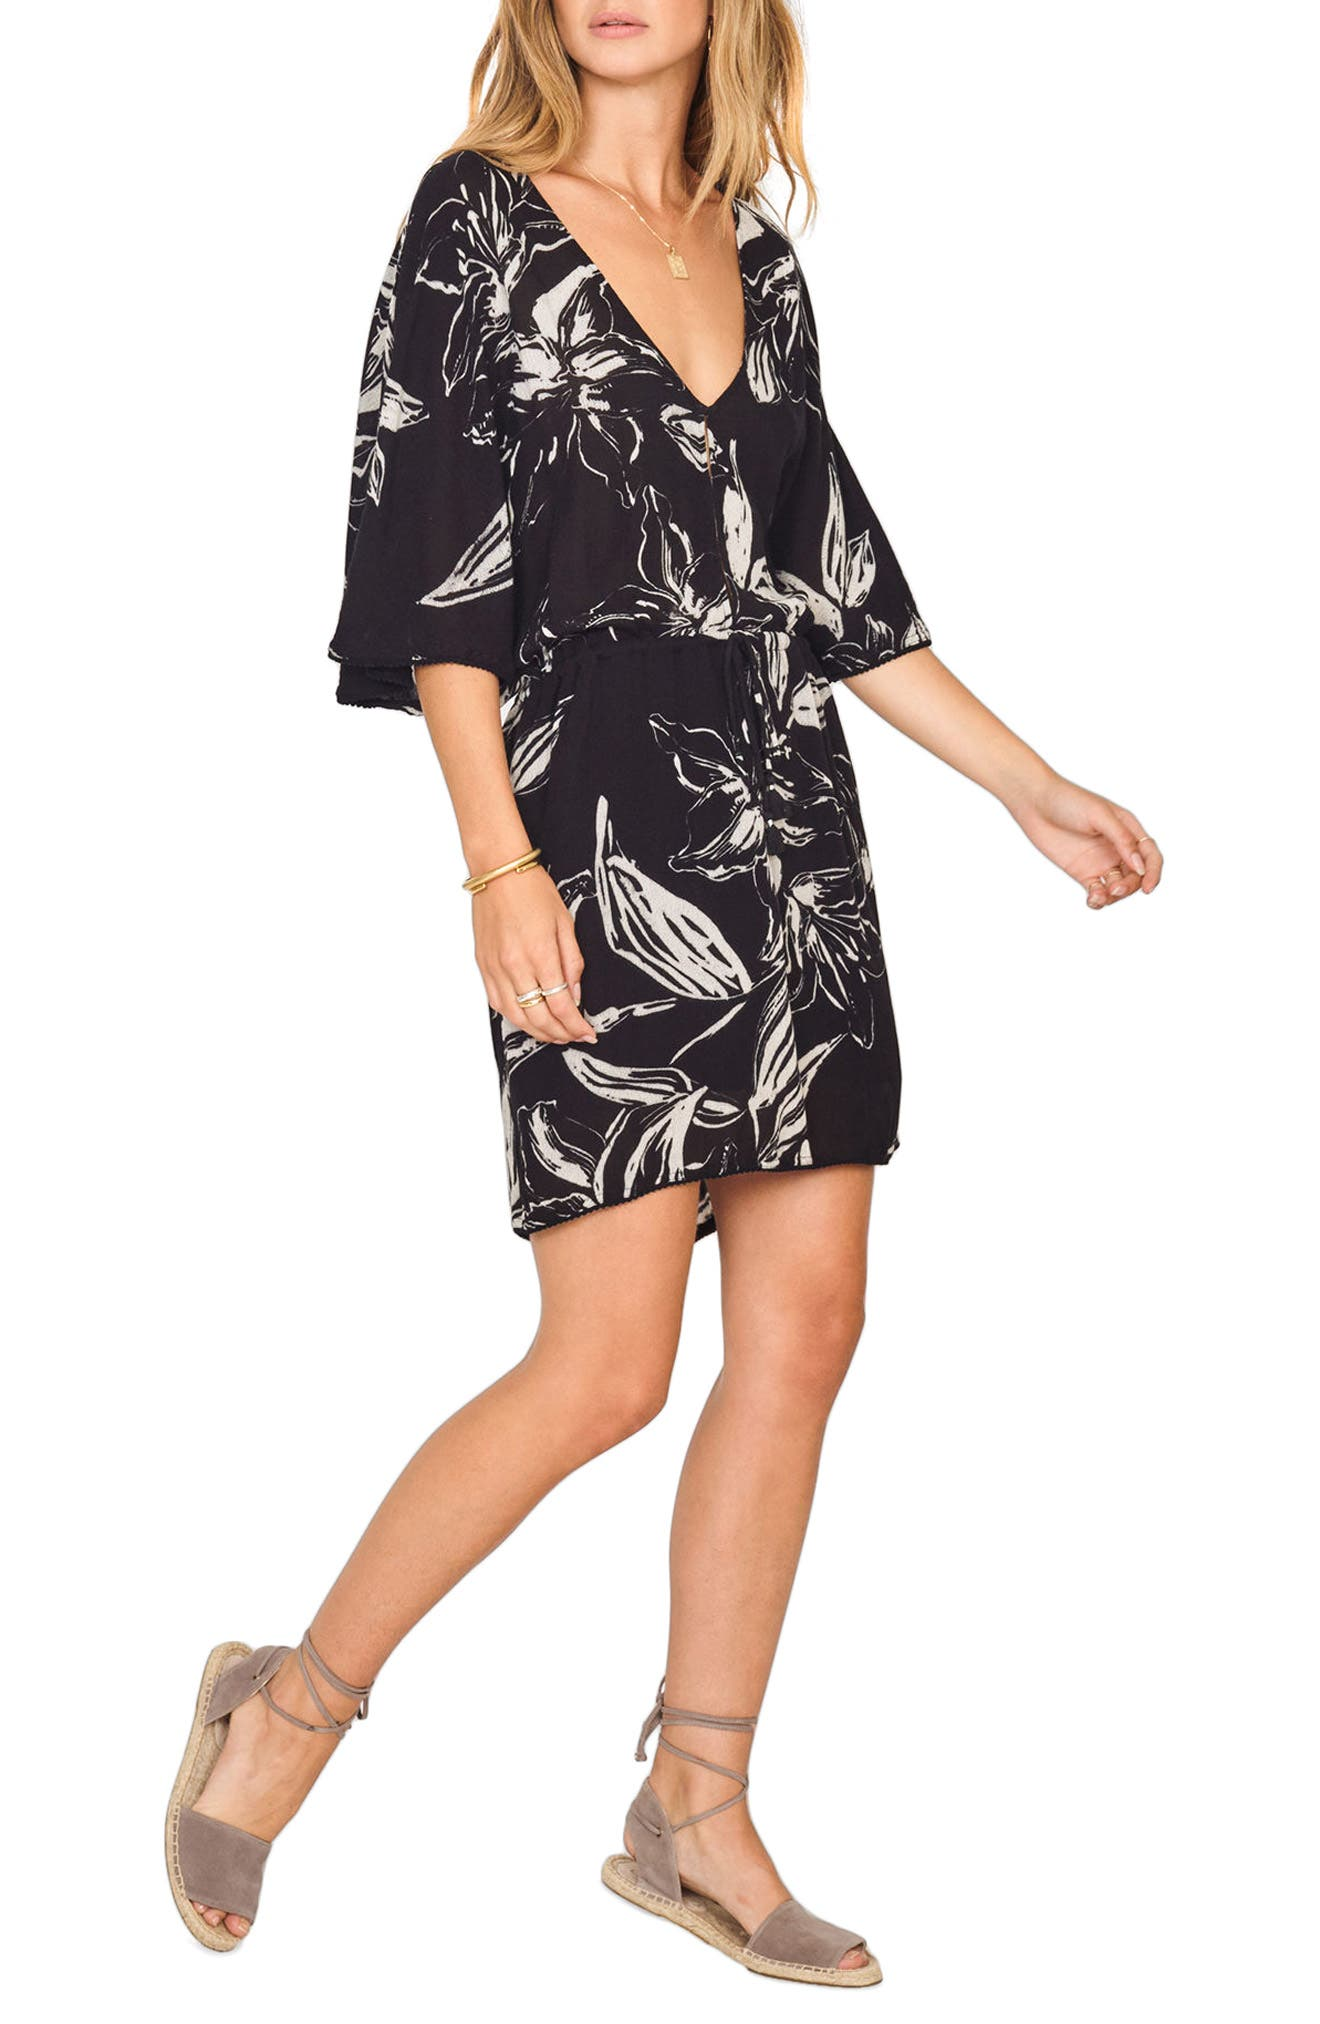 Cross My Heart Floral Print Dress,                         Main,                         color, 001